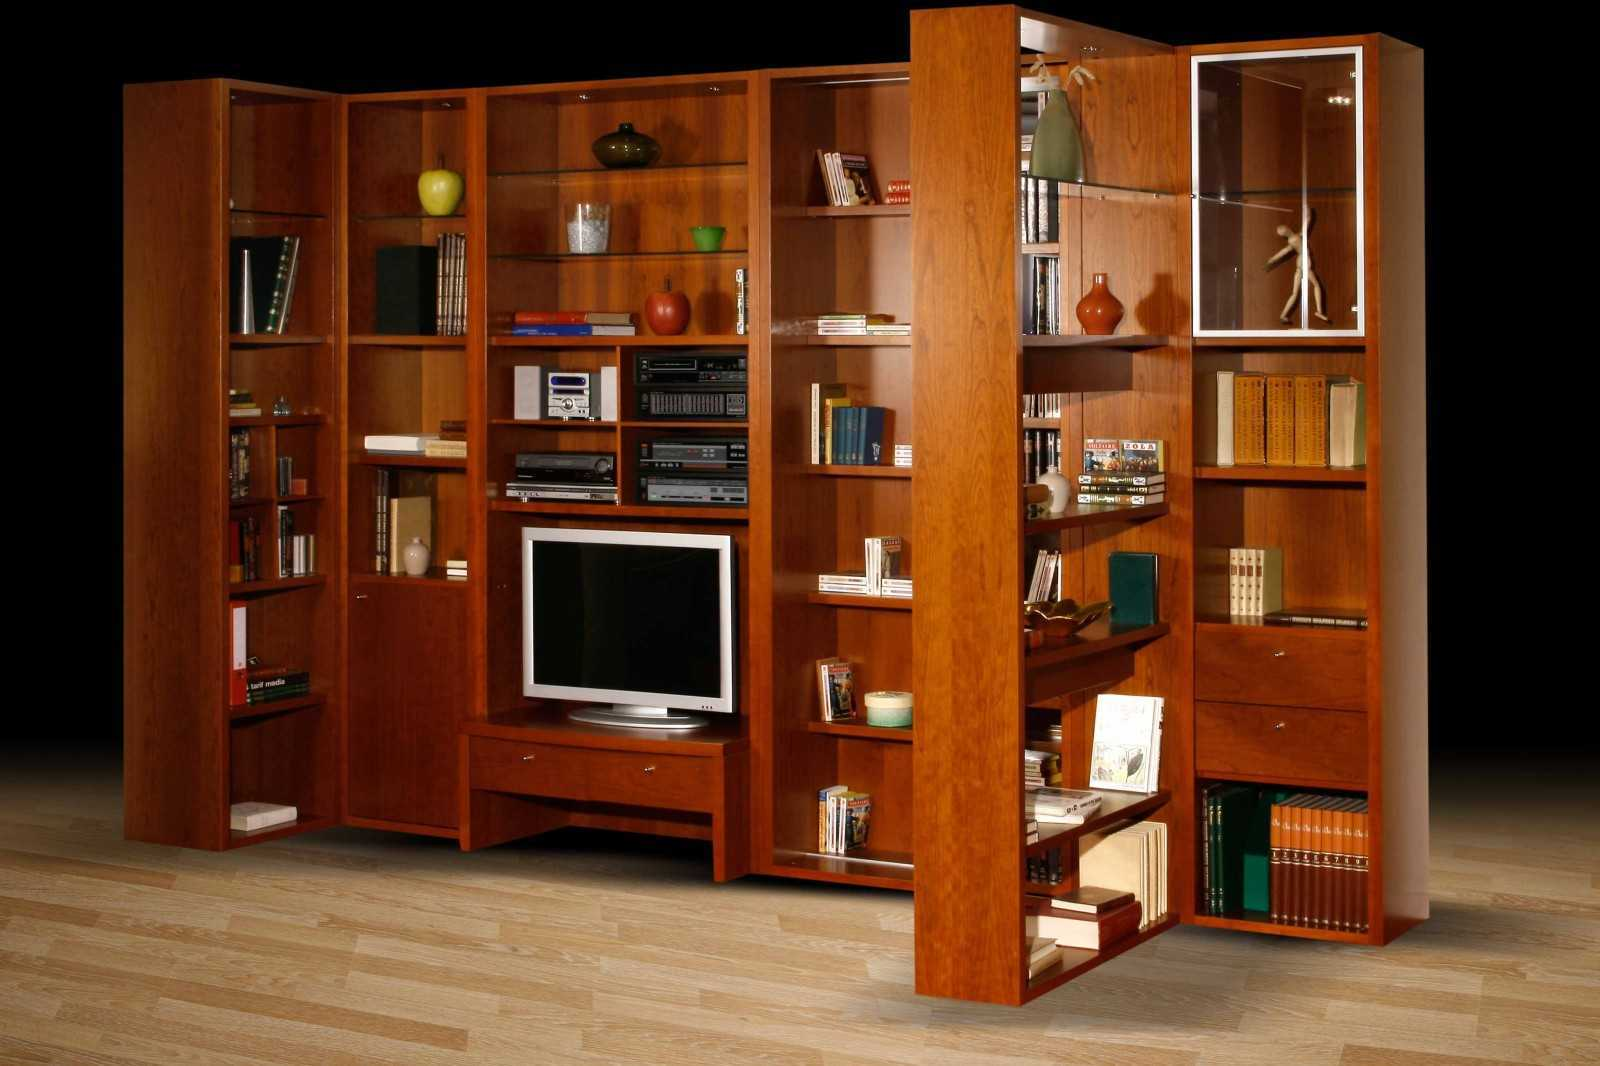 biblioth que s paration de pi ces la maison des bibliotheques. Black Bedroom Furniture Sets. Home Design Ideas